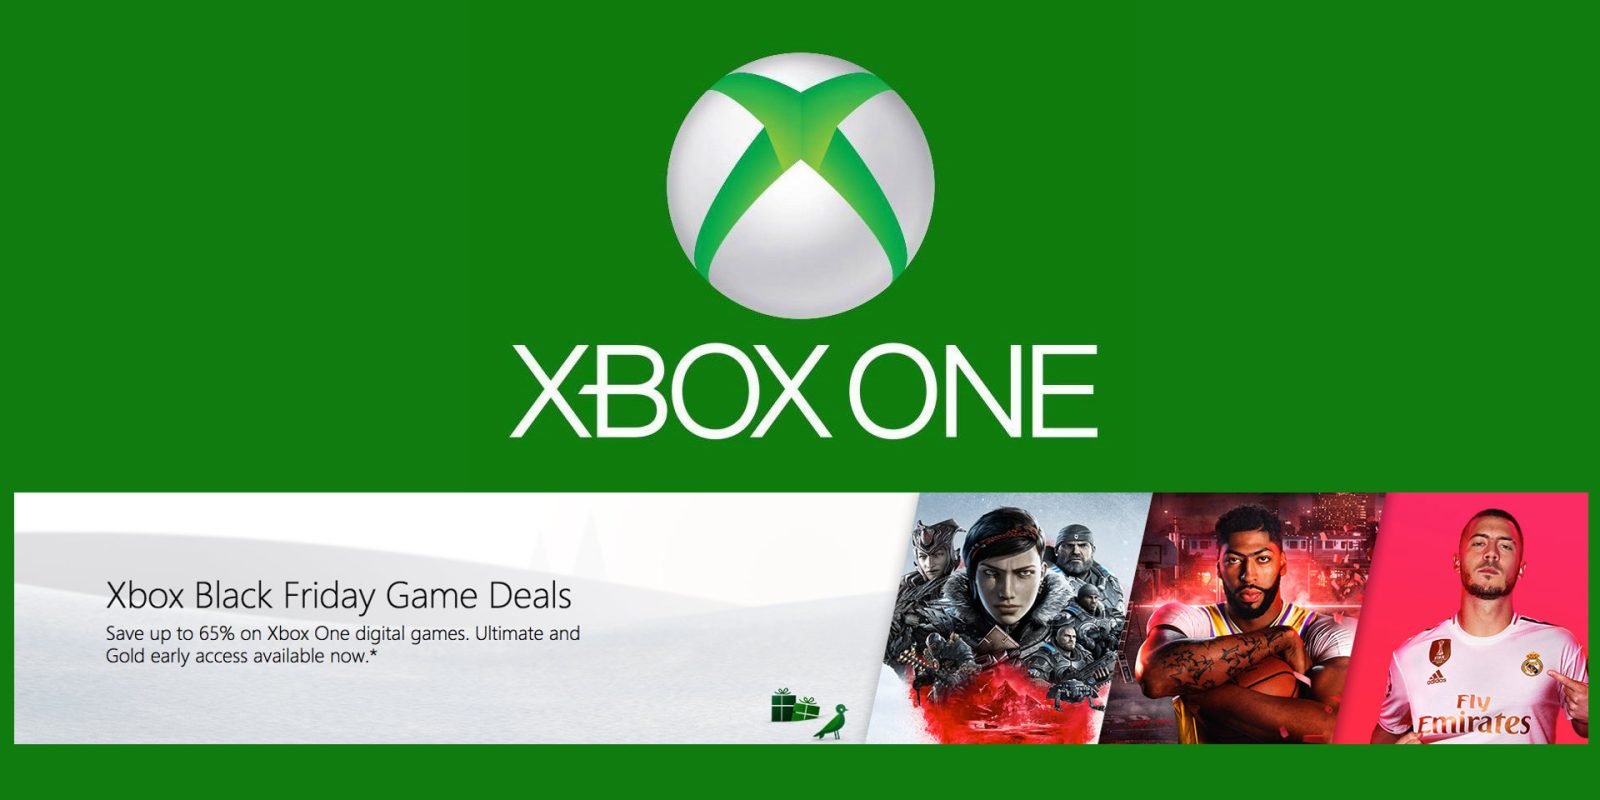 Massive Xbox Black Friday game sale now live: Hundreds of titles up to 65% off